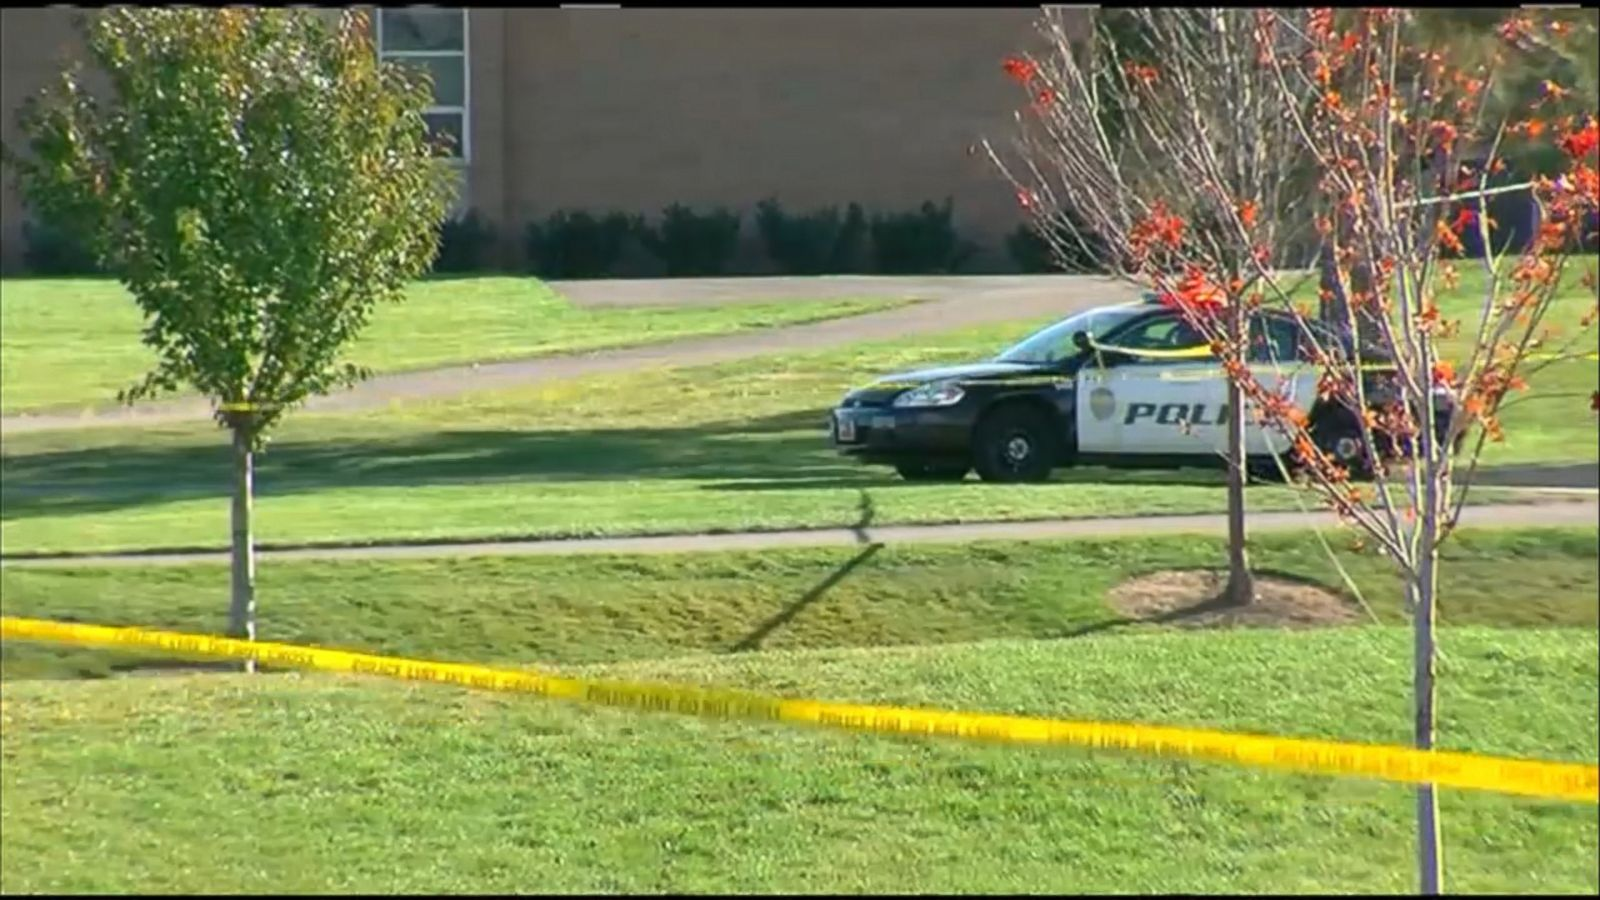 VIDEO: A 16-year-old student has been injured in a shooting outside a middle school in Sandy, Utah, according to police.